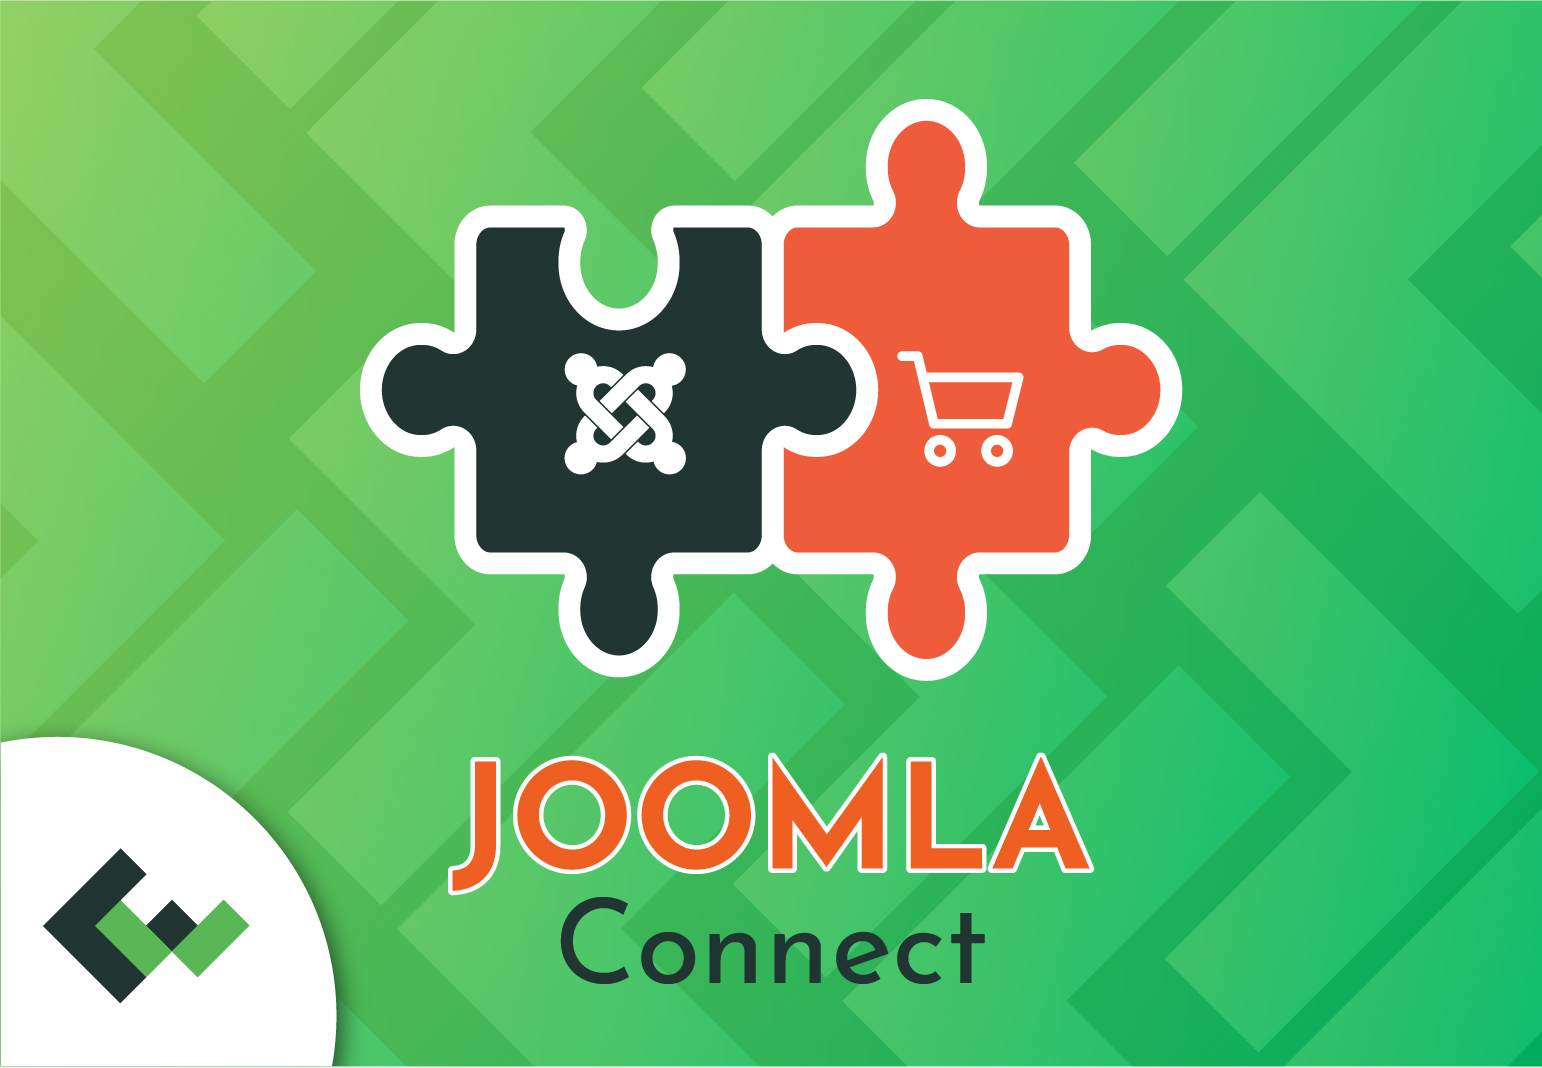 Joomla Connect <p>Joomla Connect combines the best of both Joomla!'s CMS system and Magento's E-commerce abilities.<br /> Significant features<br /> – Automatically transfer data from Joomla! CMS to a Magento 2 site<br /> – Transfer articles, categories, tags… and more<br /> – Update the Magento 2 site in real-time whenever there are changes in the Joomla! CMS<br /> – Ability to add related products directly to the cart without going back to the product page, helping to increase orders</p>